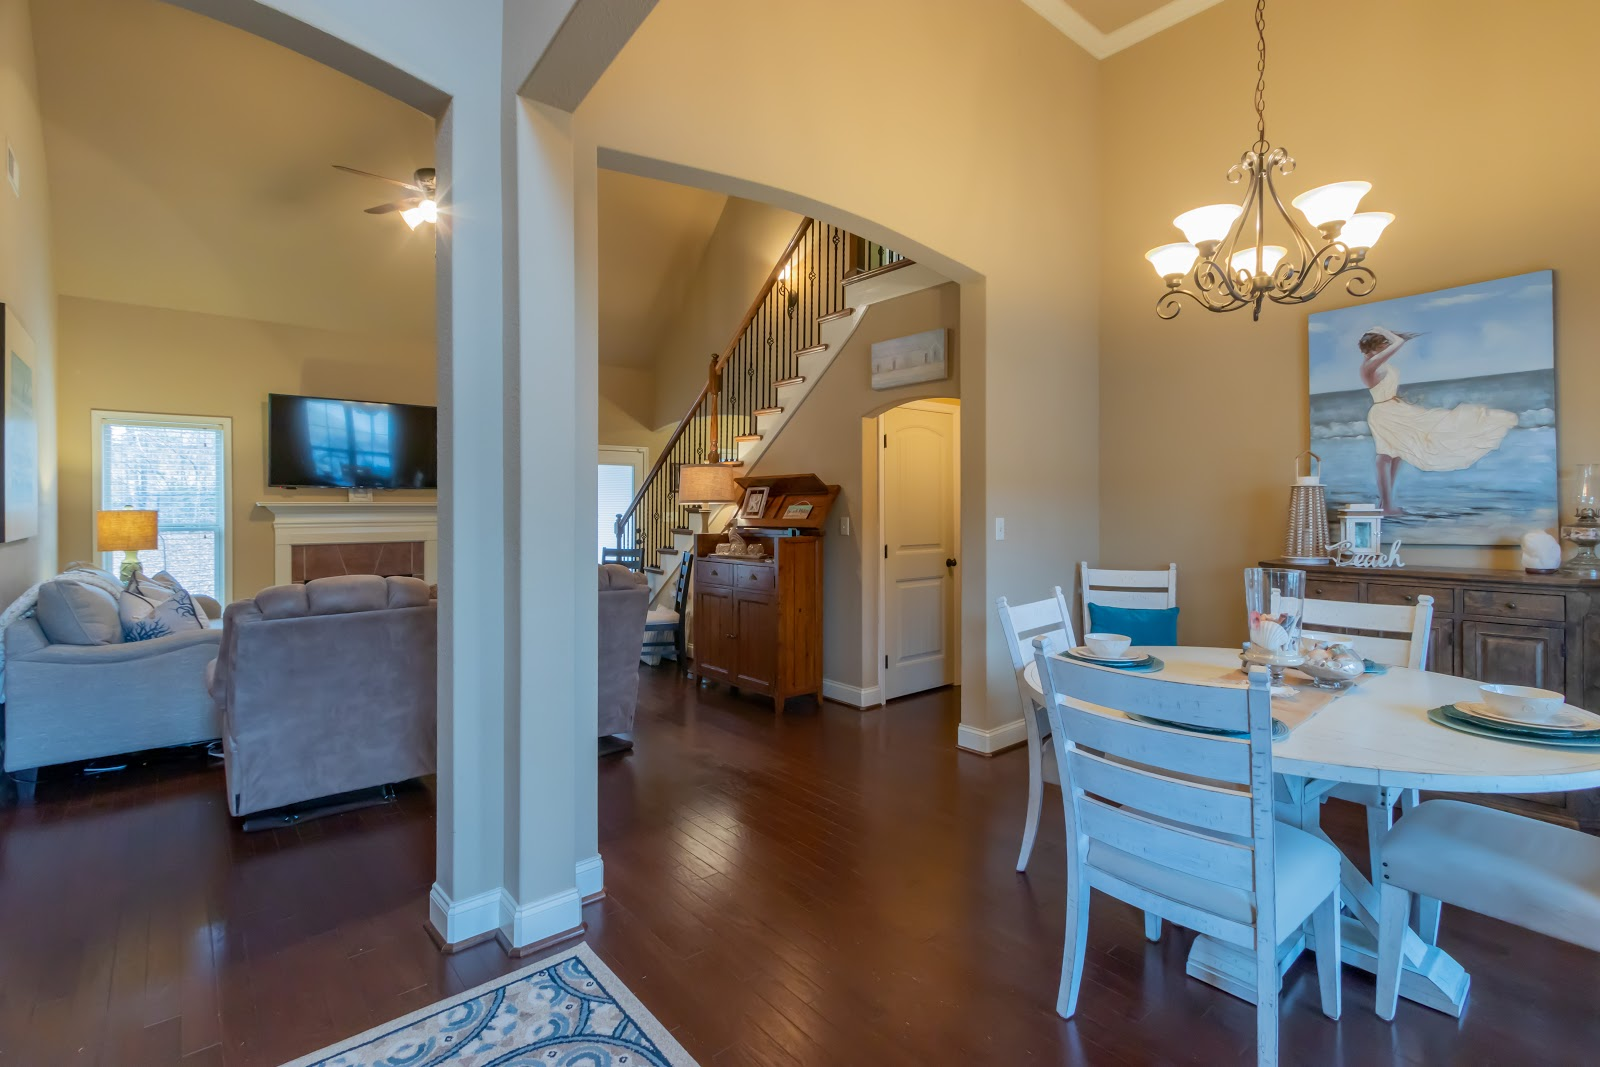 Plenty of light is needed at the entryway. Clearly define areas when staging an open concept home.